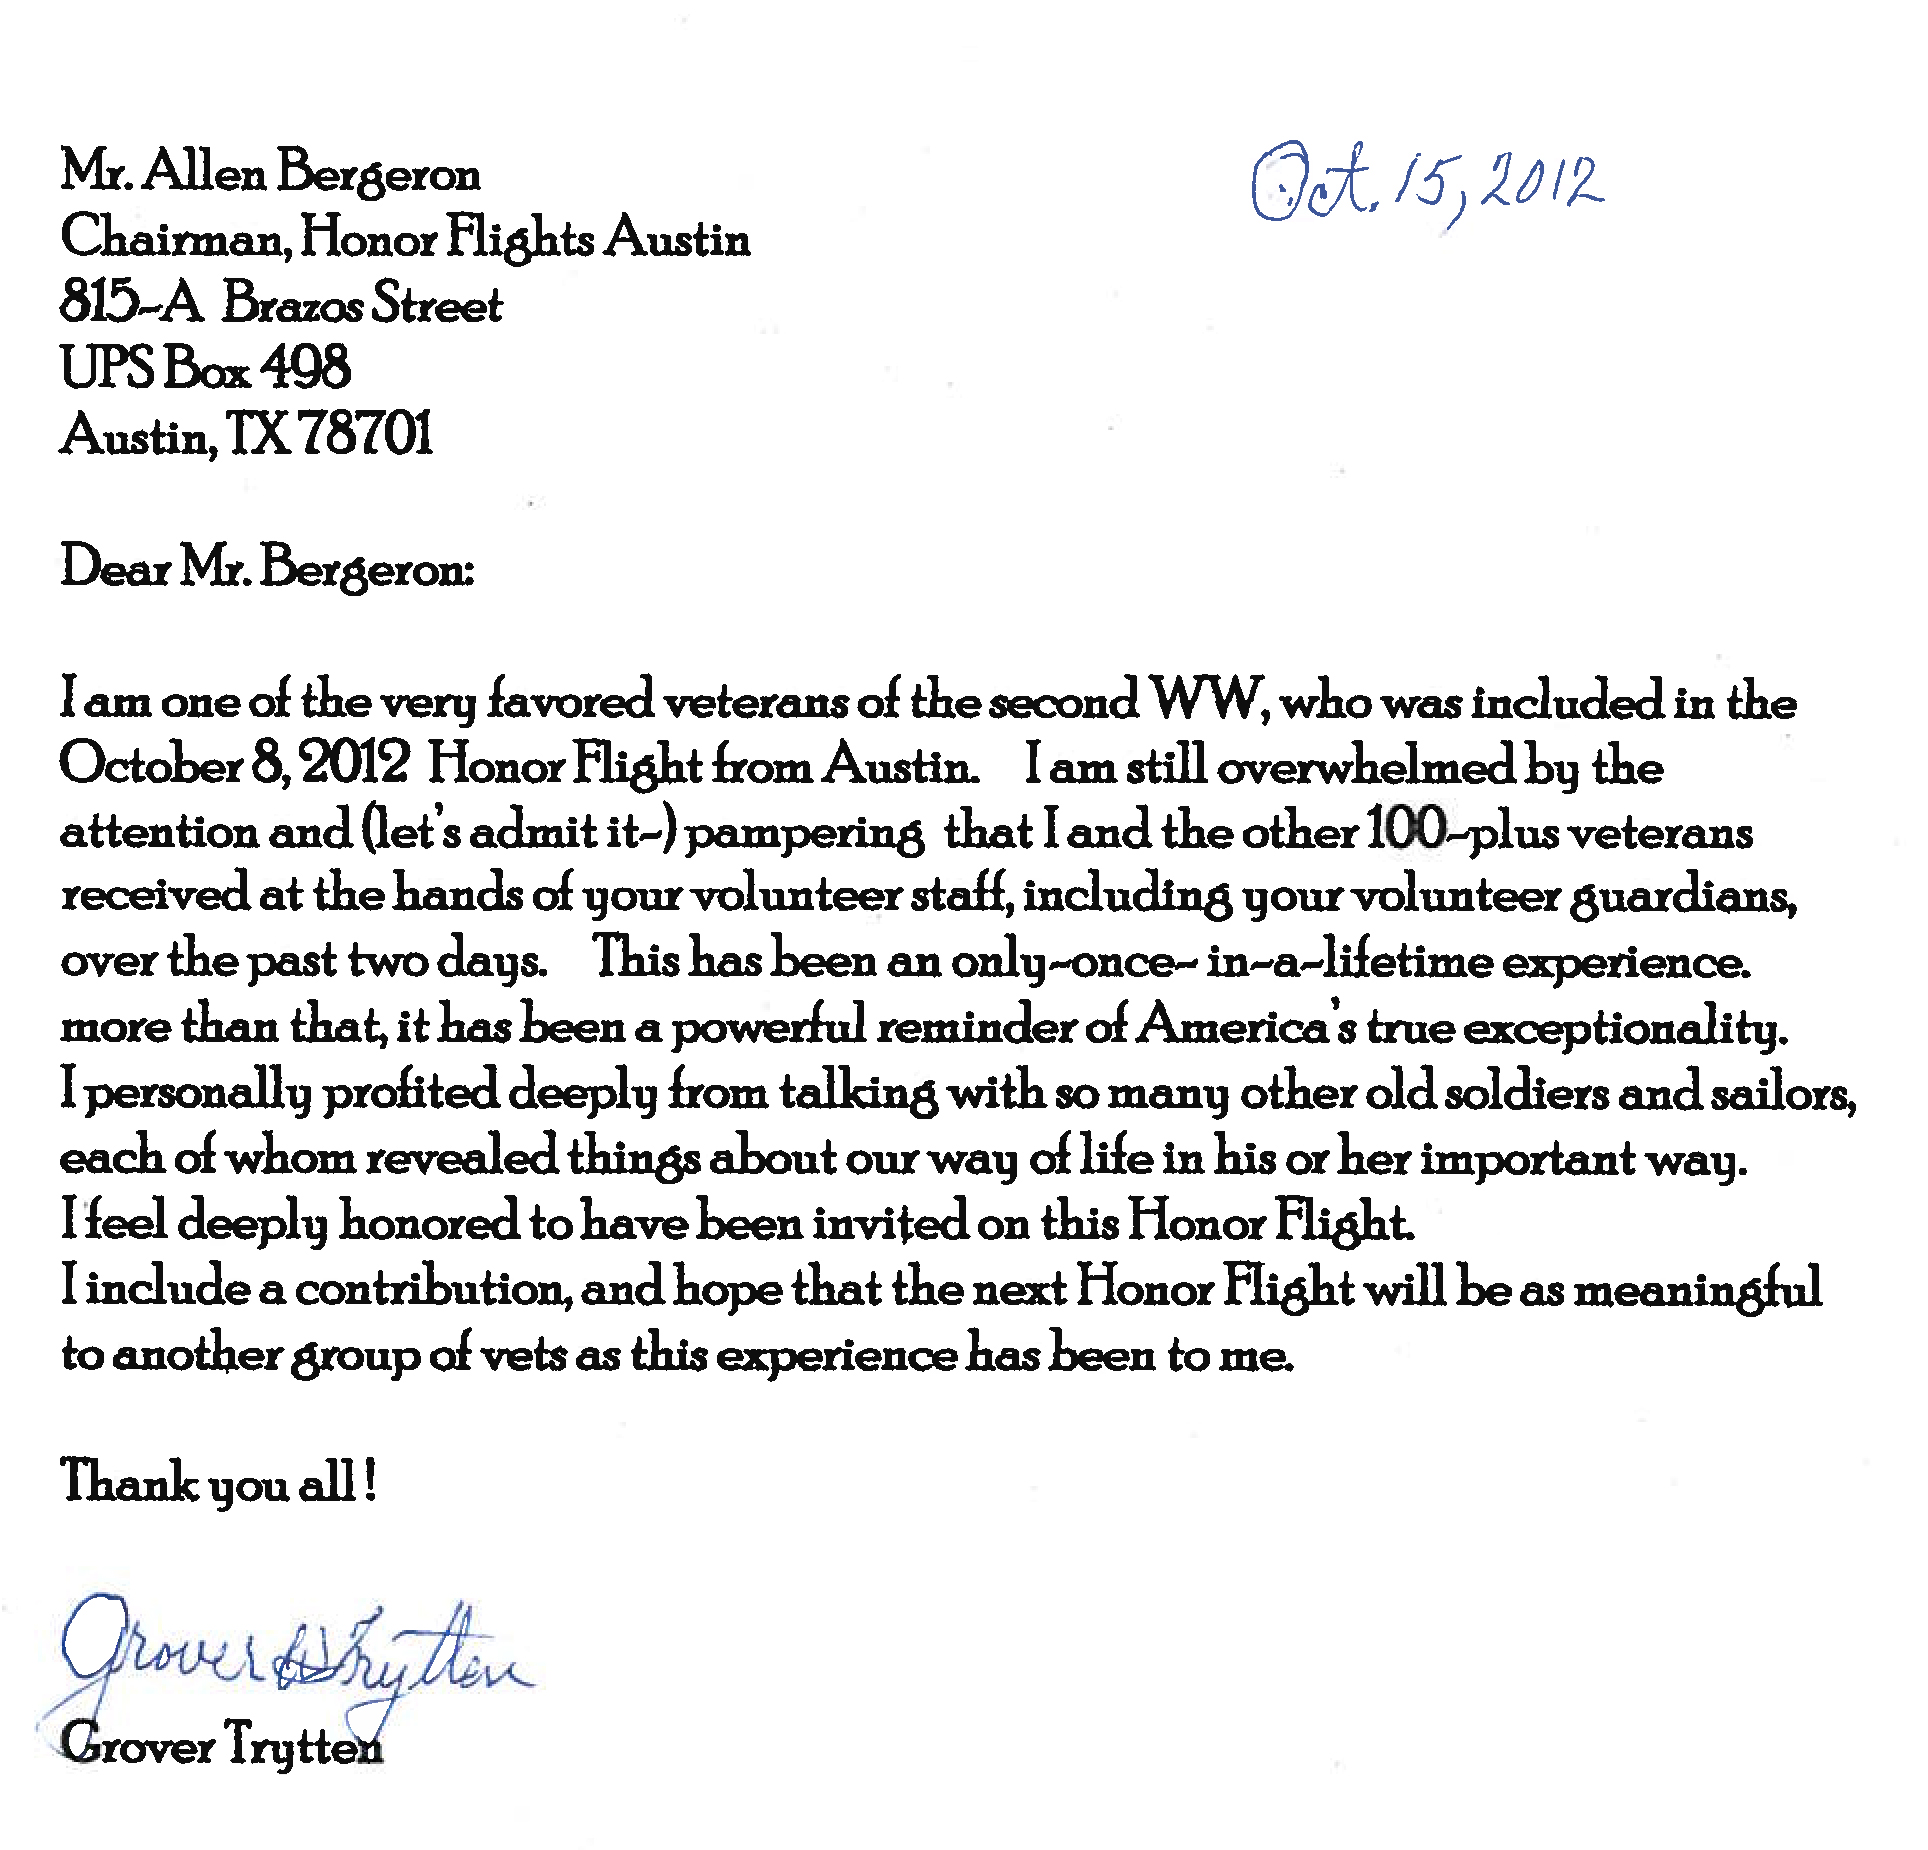 Sample Letter To WWII Veteran